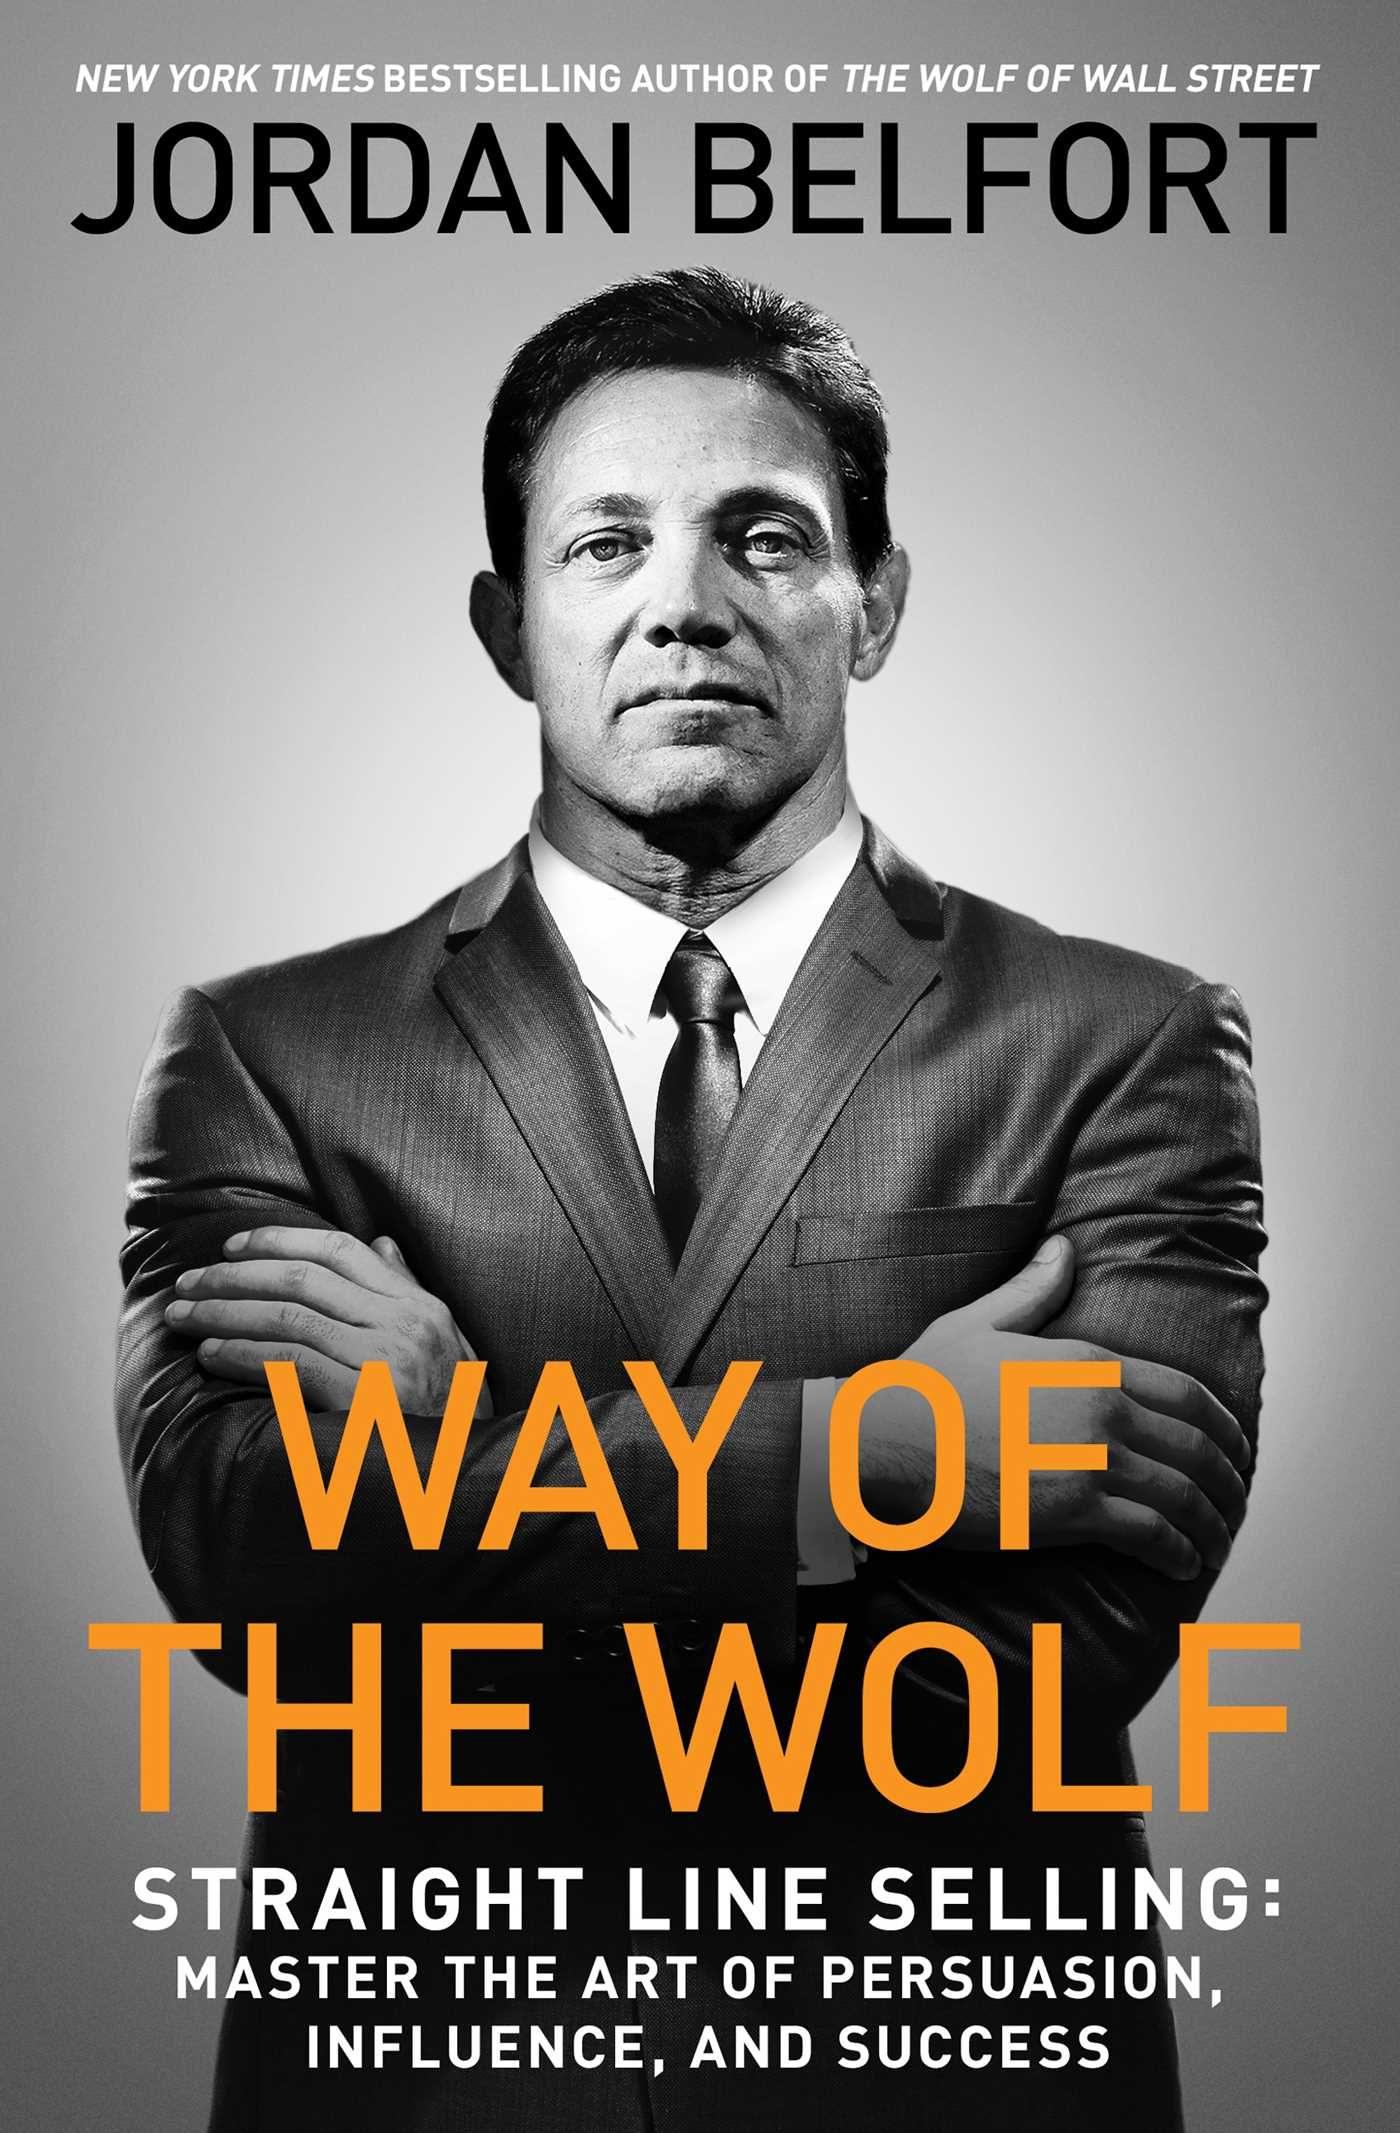 Way of the wolf 9781501164309 hr